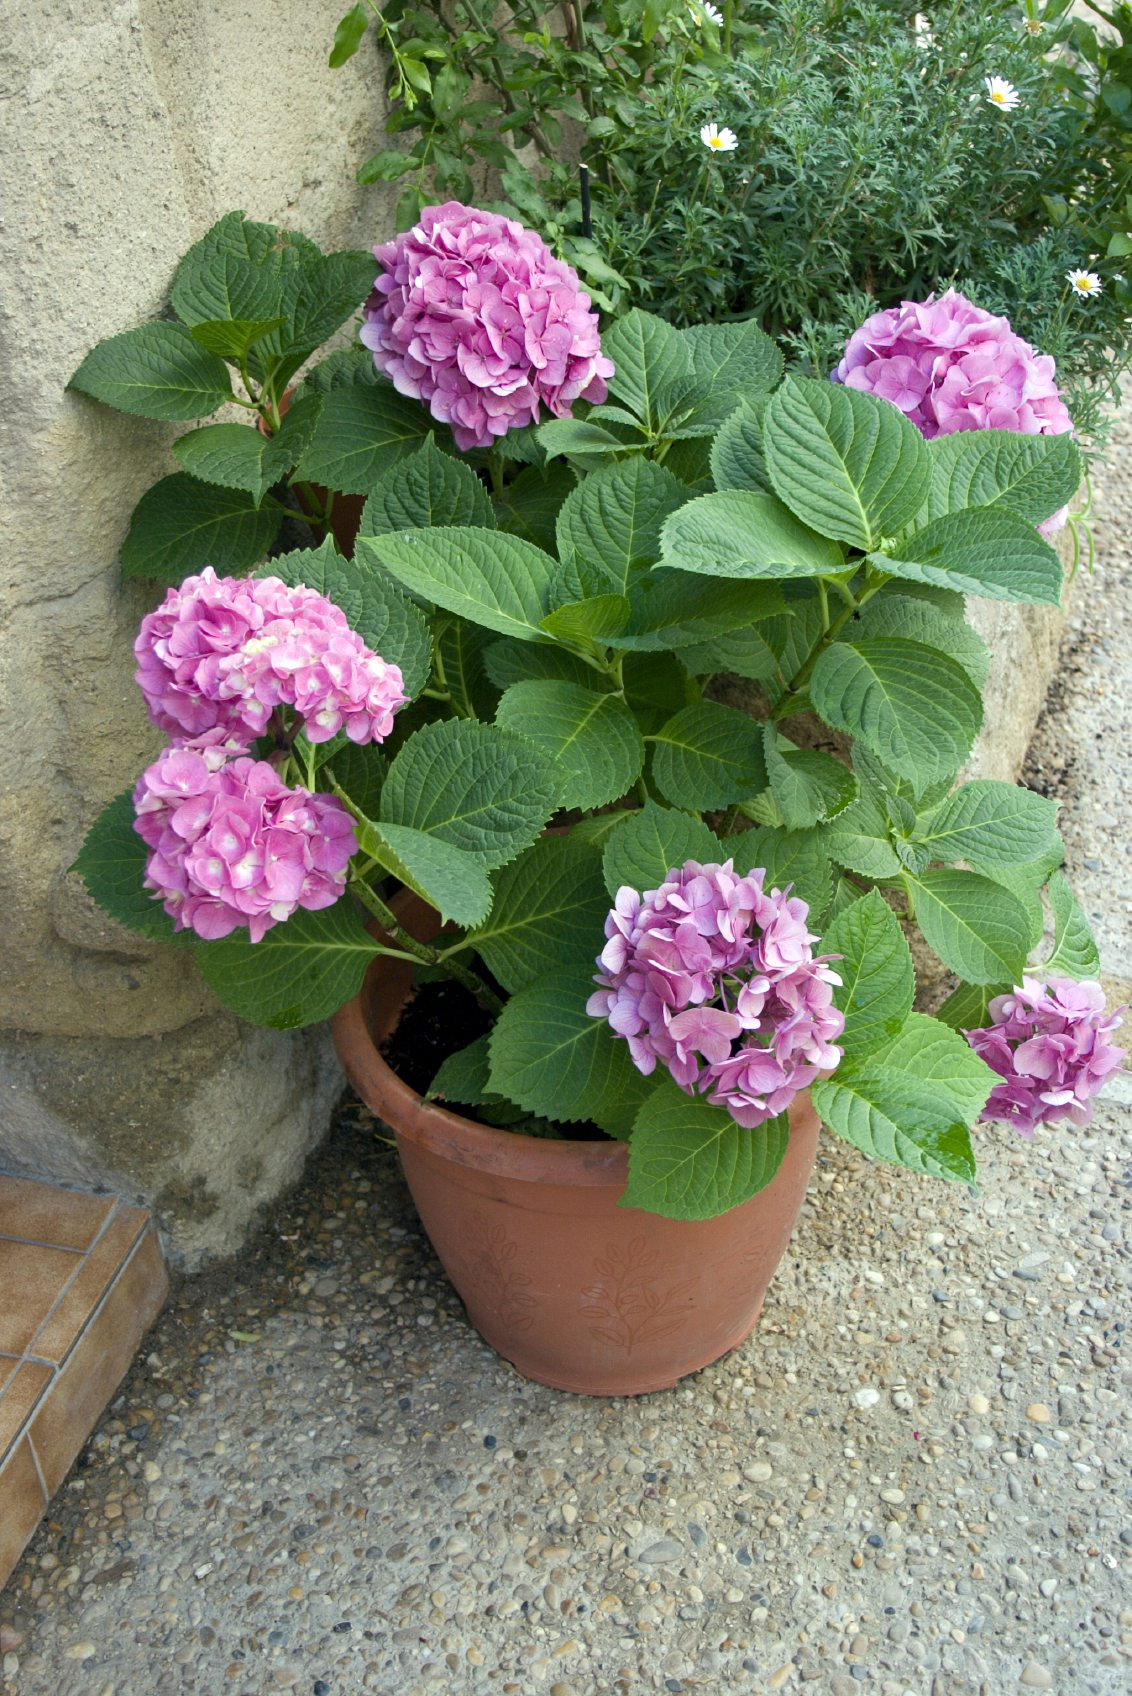 Can Hydrangeas Grow In Pots: Learn About Container Grown Hydrangea Plants